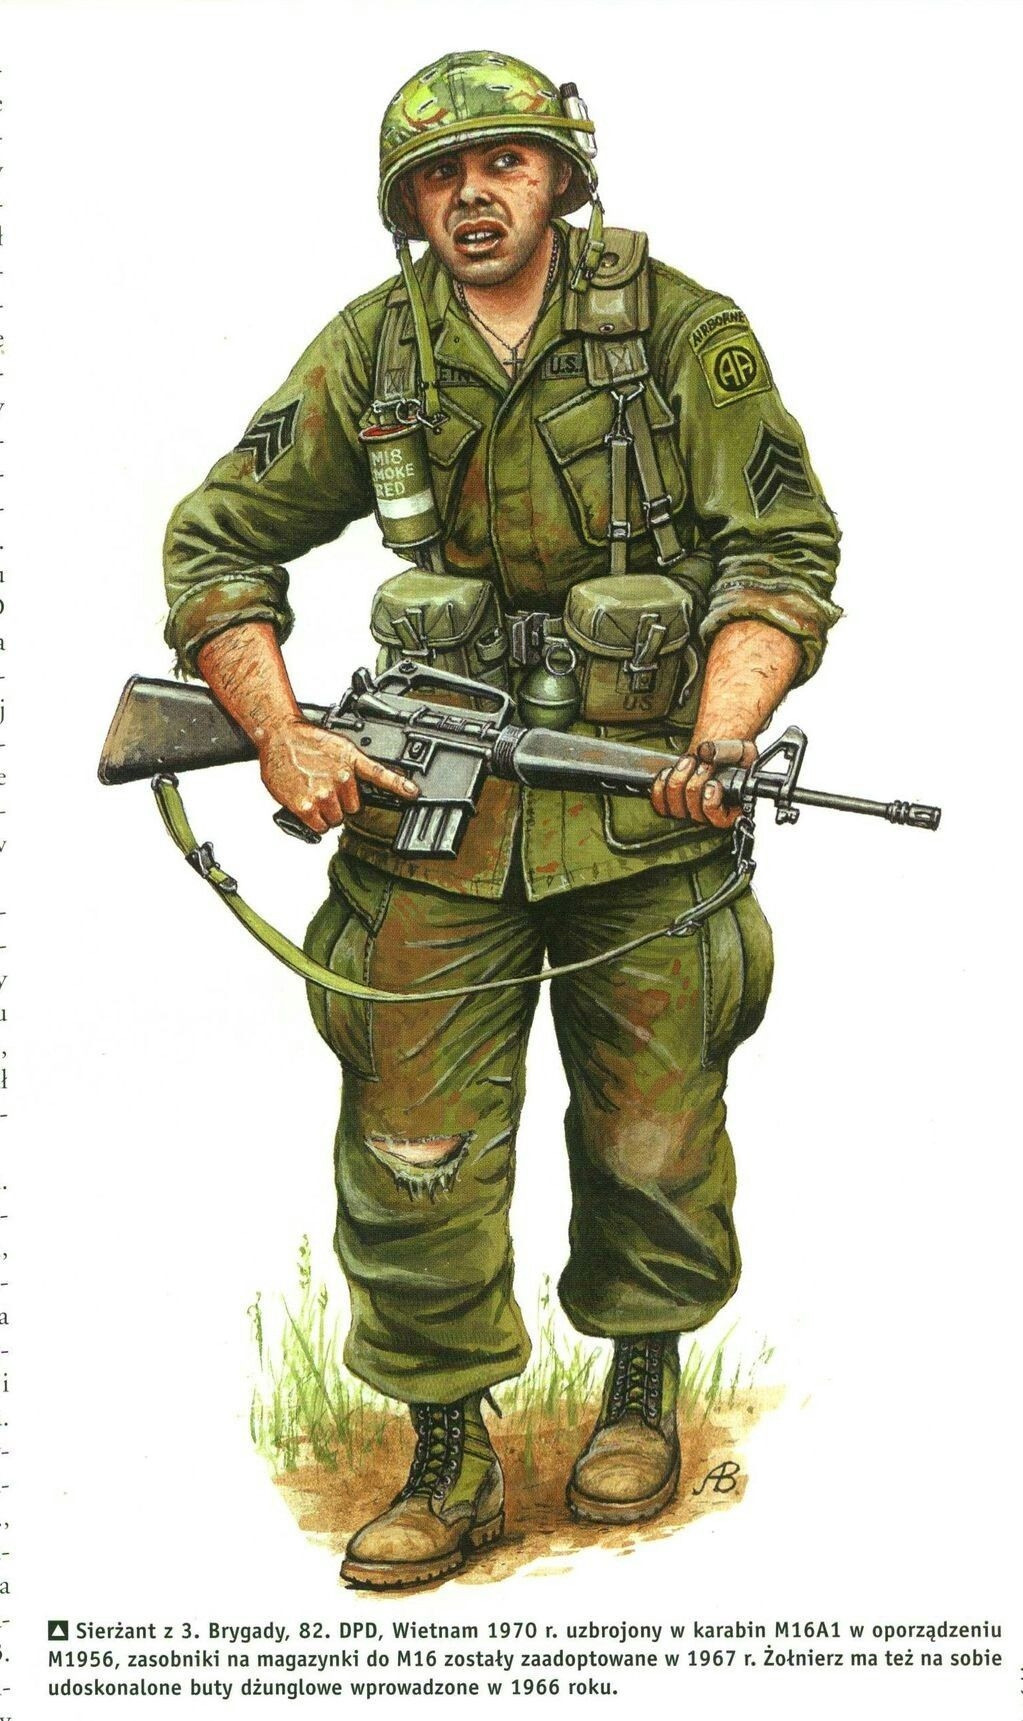 Pin By Naufal Haidar On 1 Military Modelbox Art Soldiers 1900 Now Military Soldiers Army Poster Vietnam War